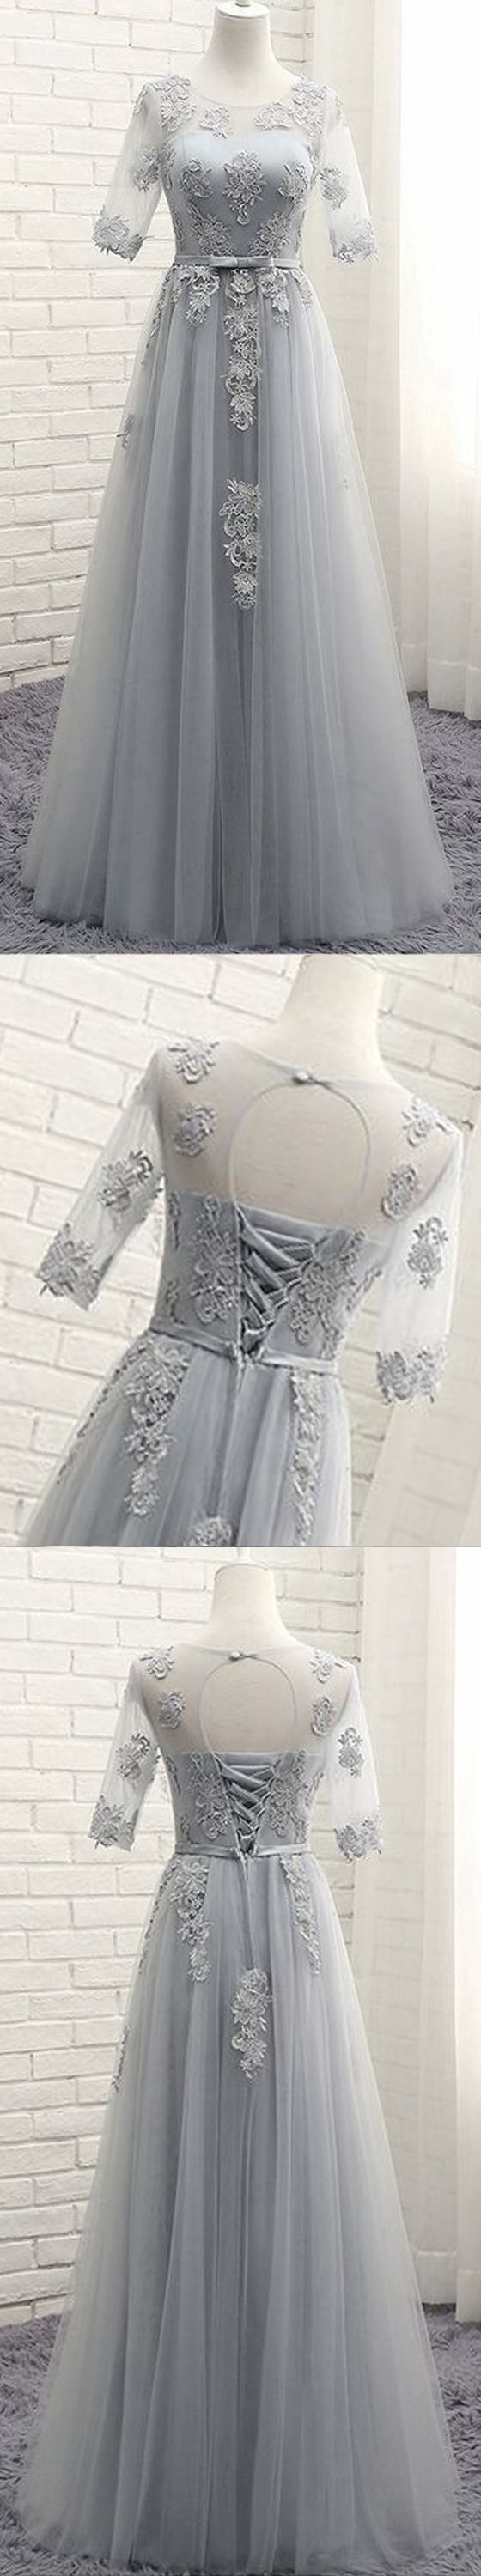 Long prom dress, half sleeve prom dress, lace up back prom dress, silver/grey prom dress, formal prom dress, occasion dress, PD15197 #prom #promdress #prom dress #dress